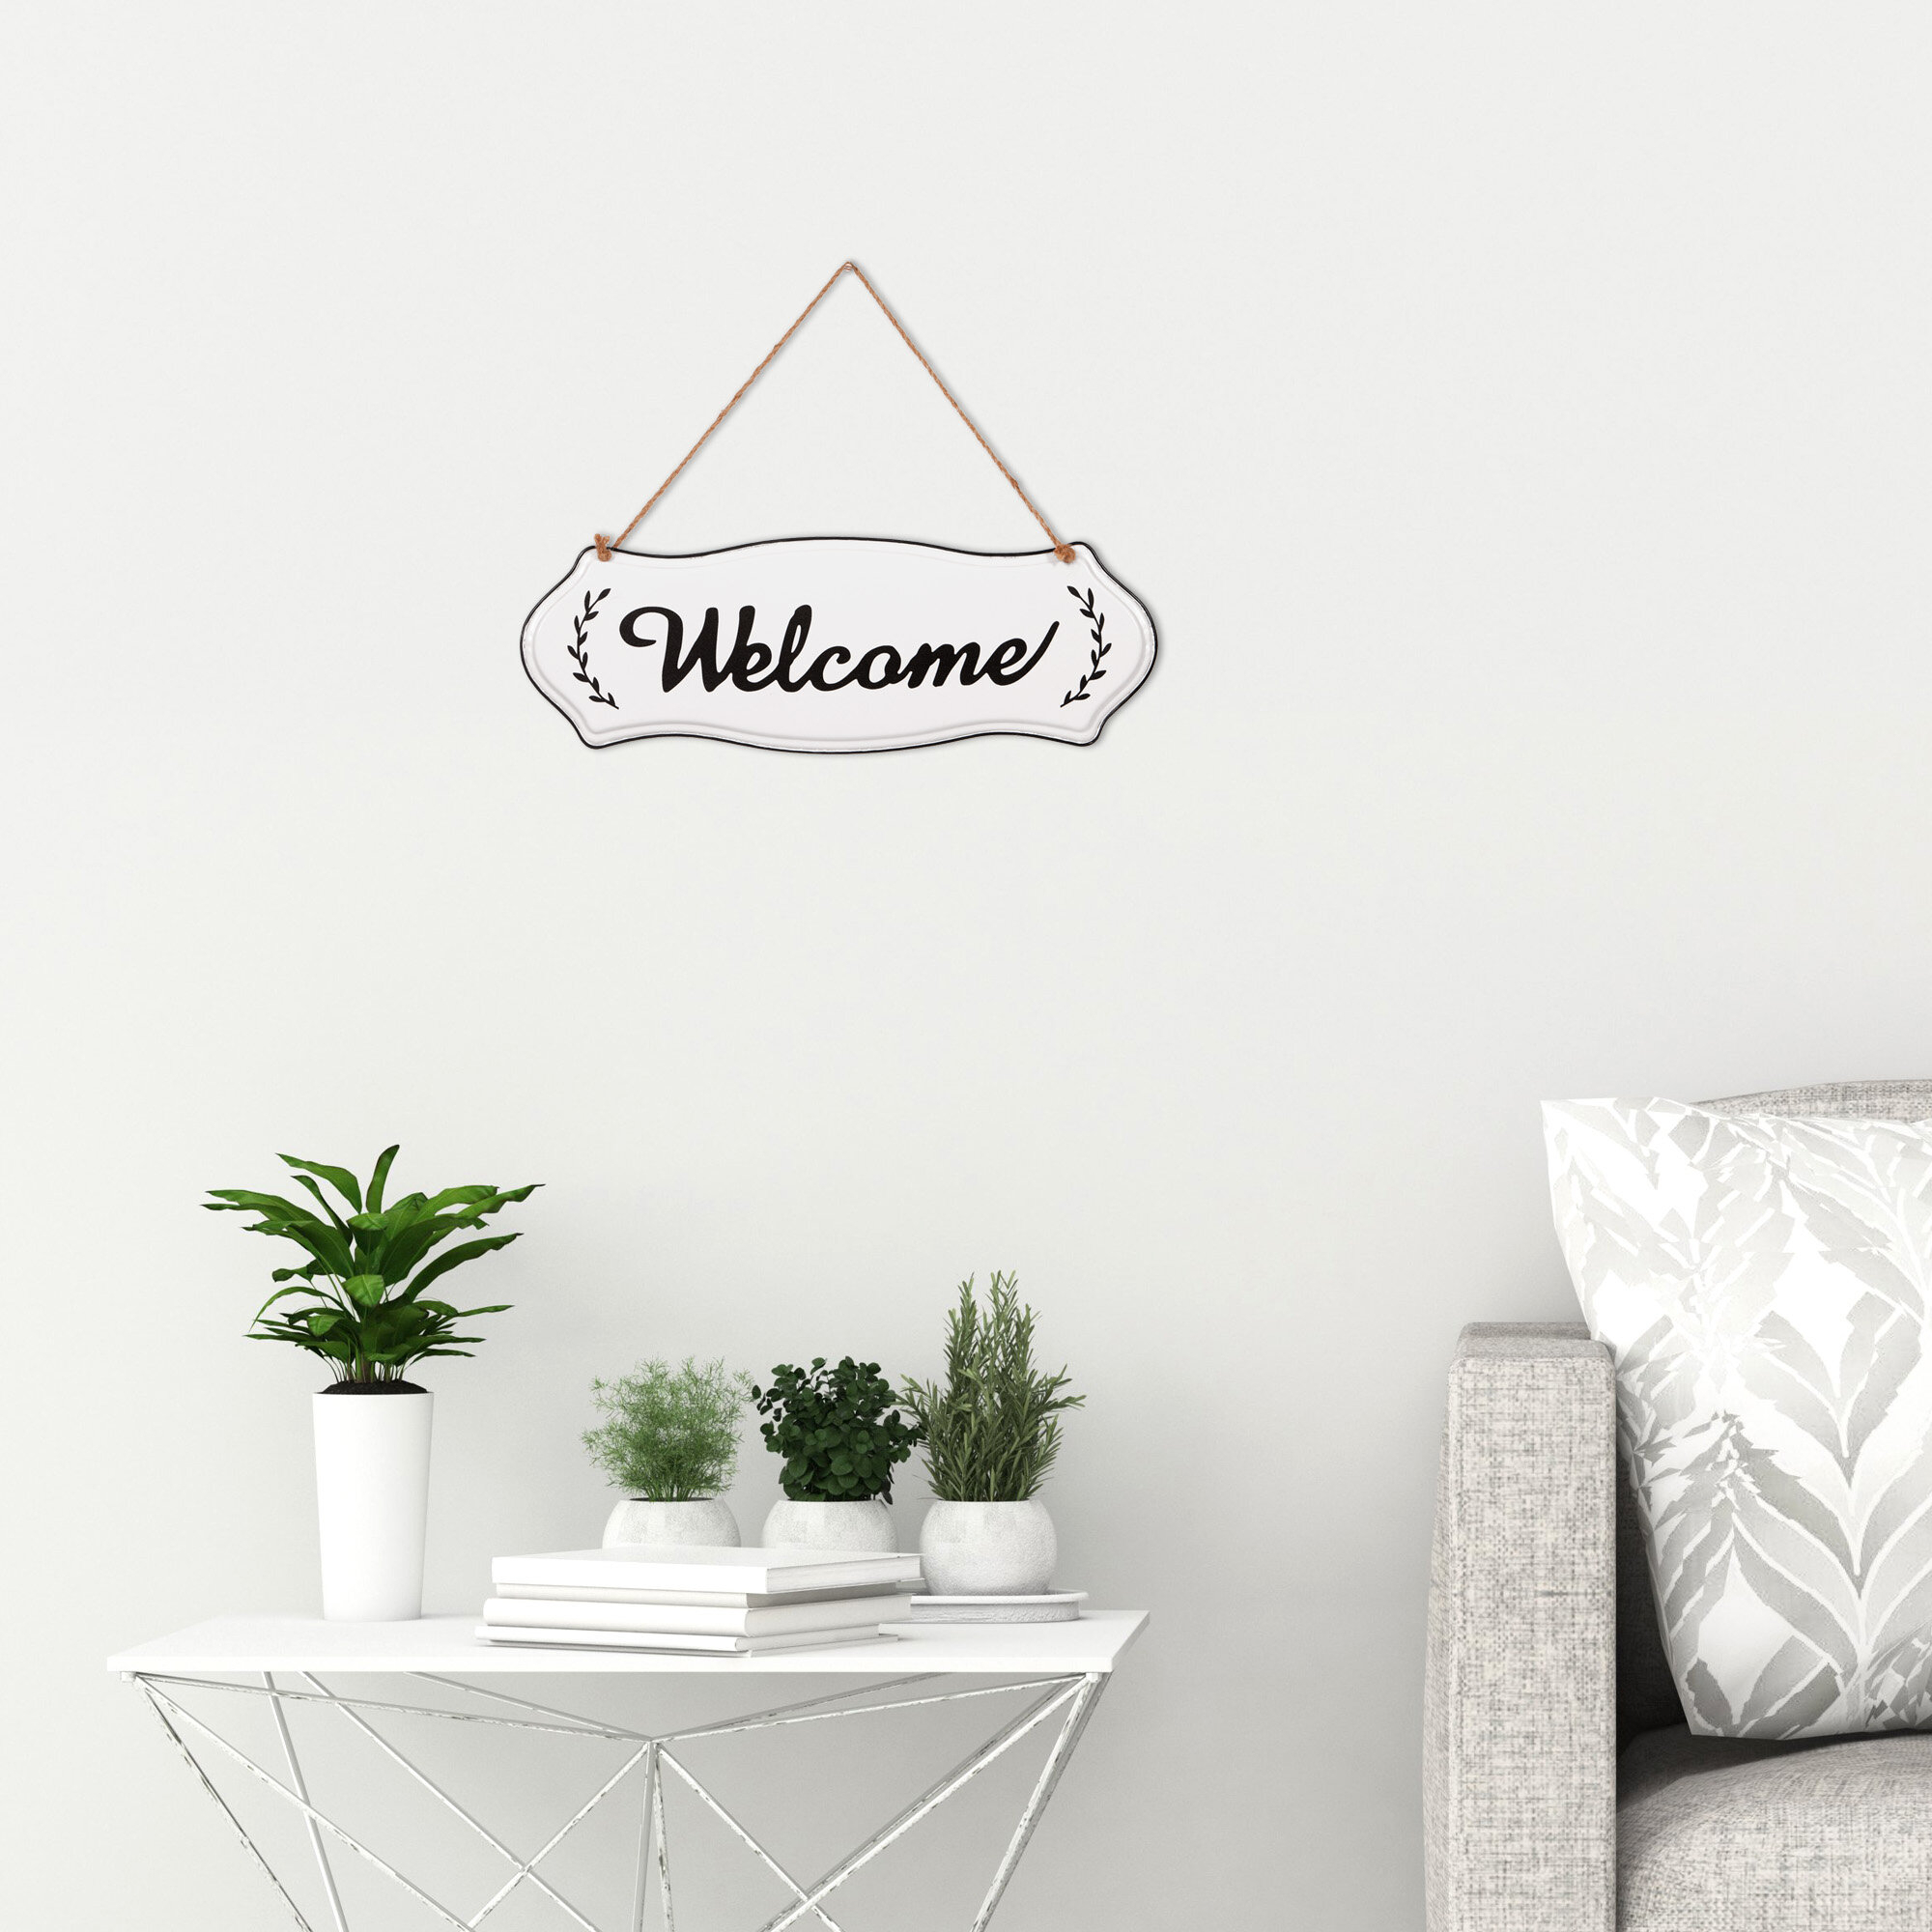 Metal Rope Wall Sign Wall Decor Throughout Well Known Gracie Oaks Hand Painted Welcome Tin Enamel Wall Sign With Jute Rope (View 13 of 20)